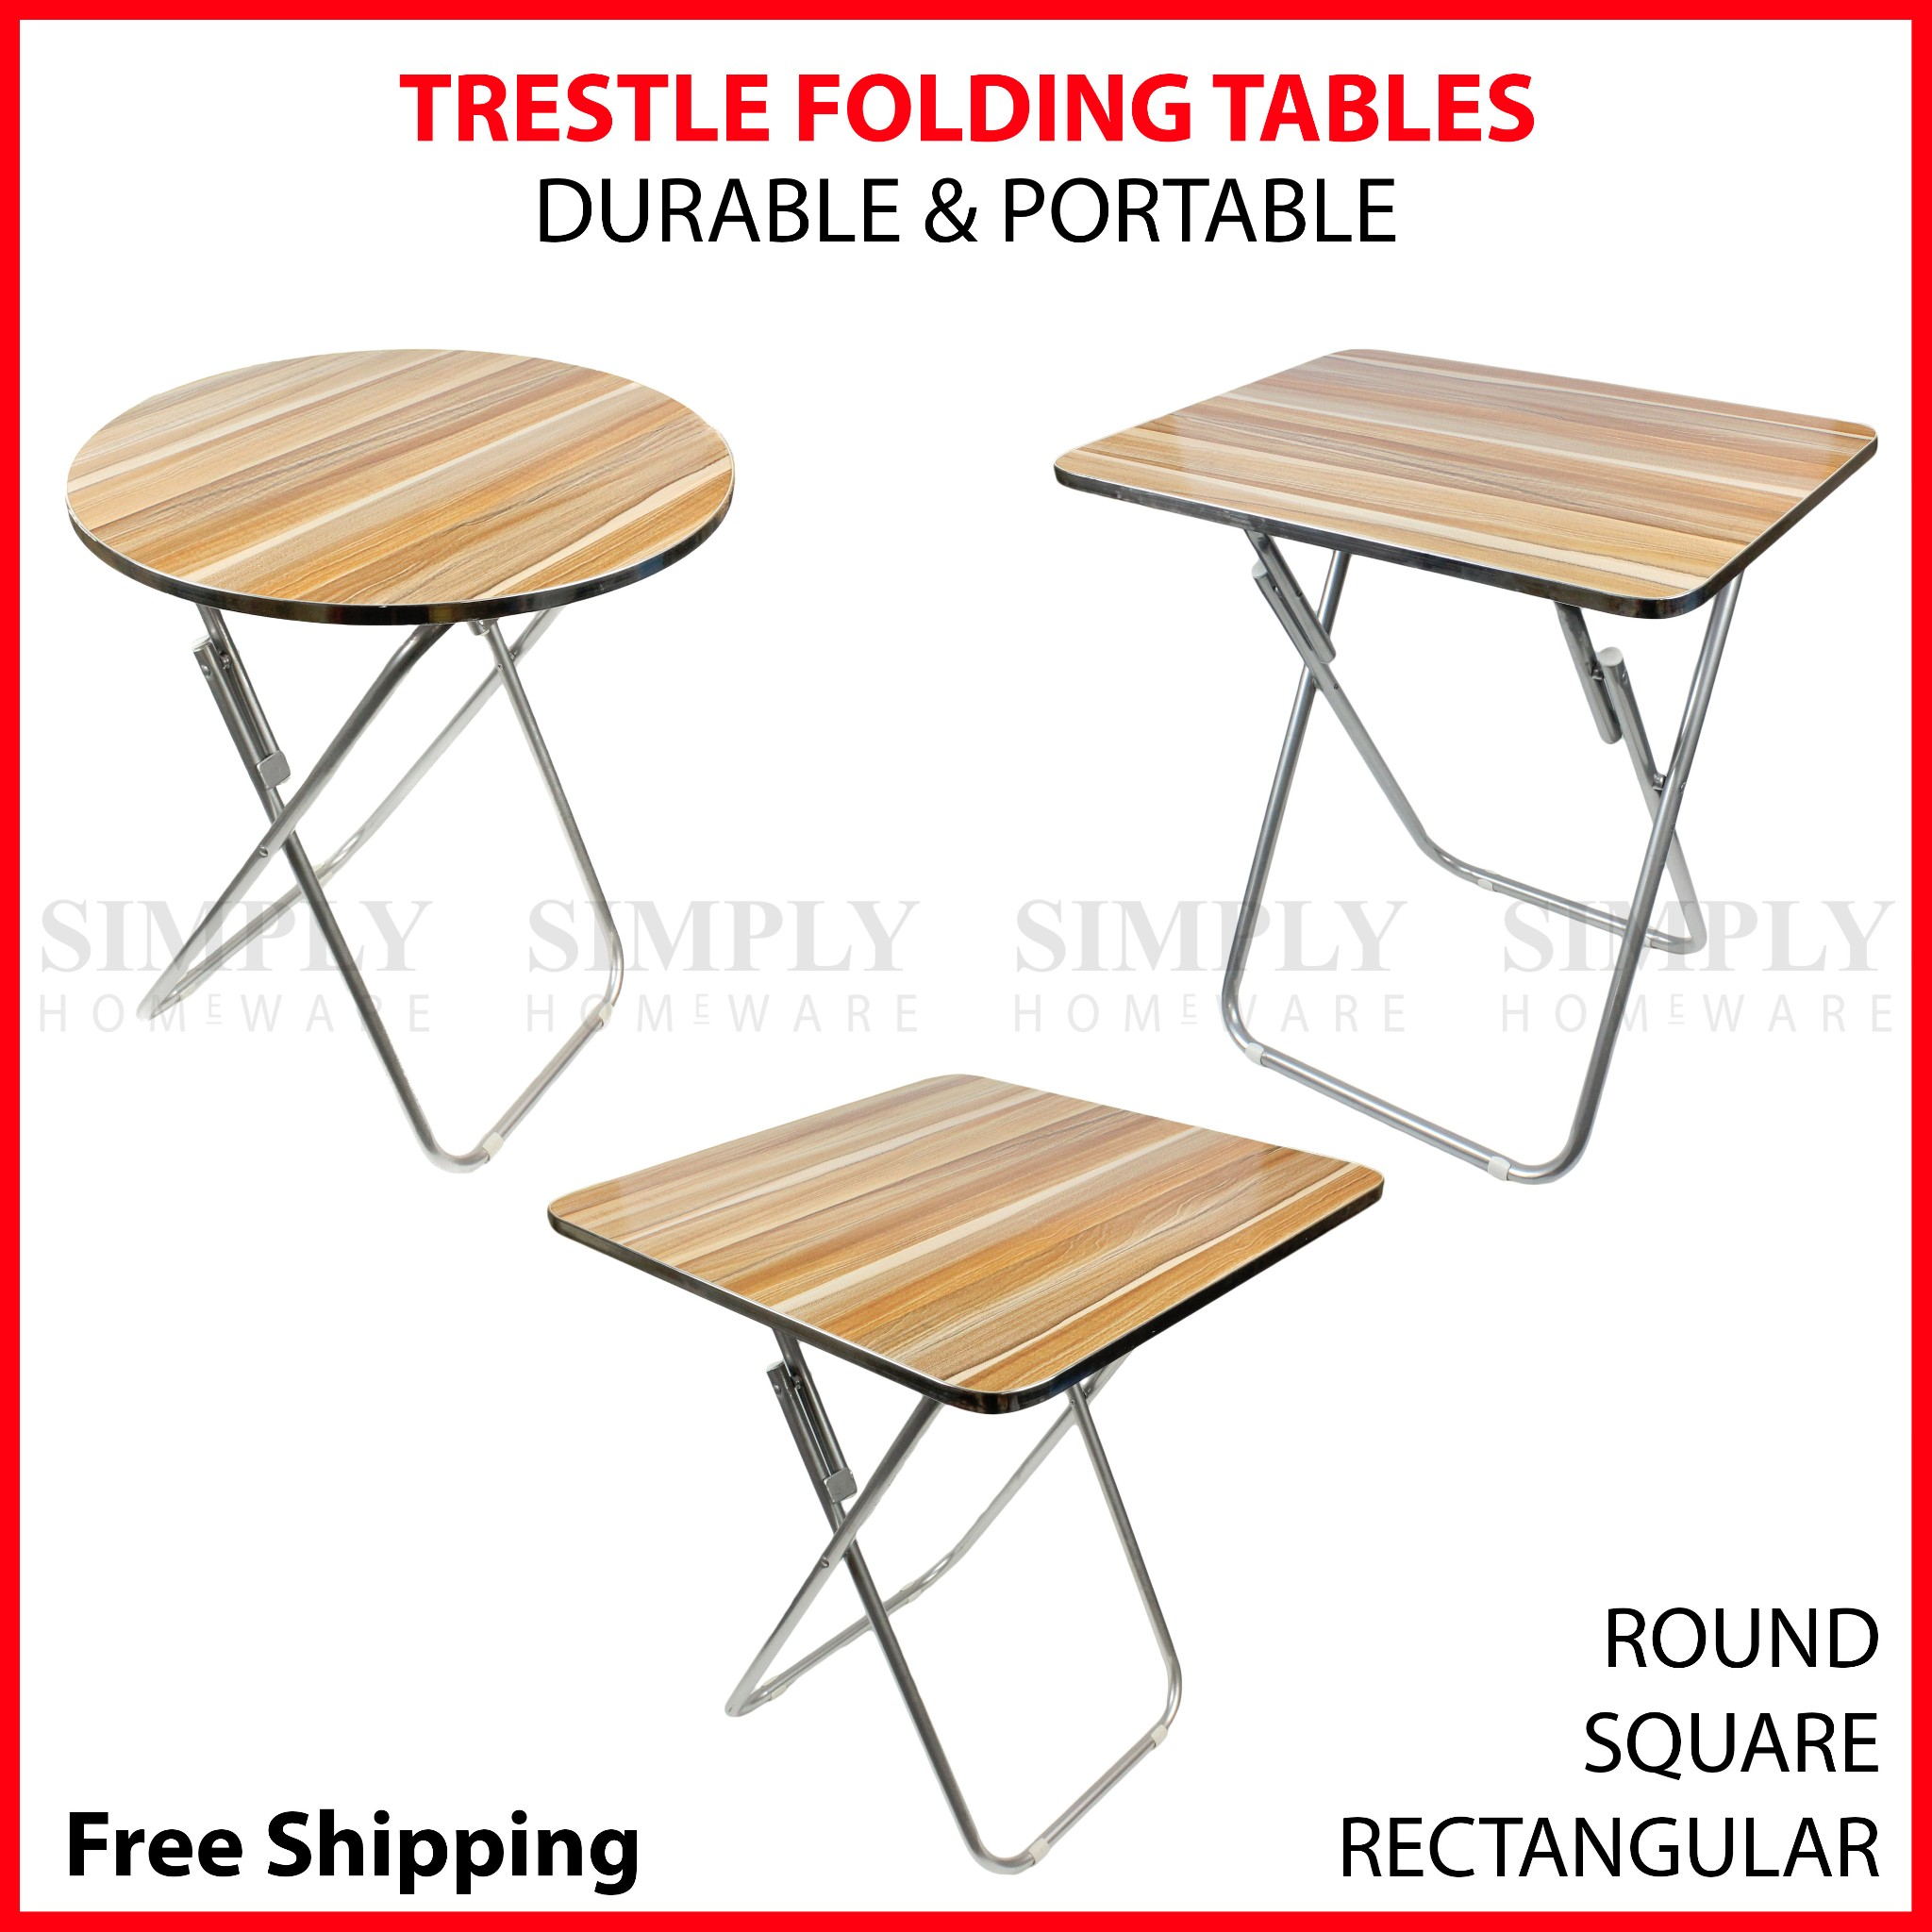 Details about  Round Folding Table Trestle Portable Tables Foldable Camping Picnic Dining Small